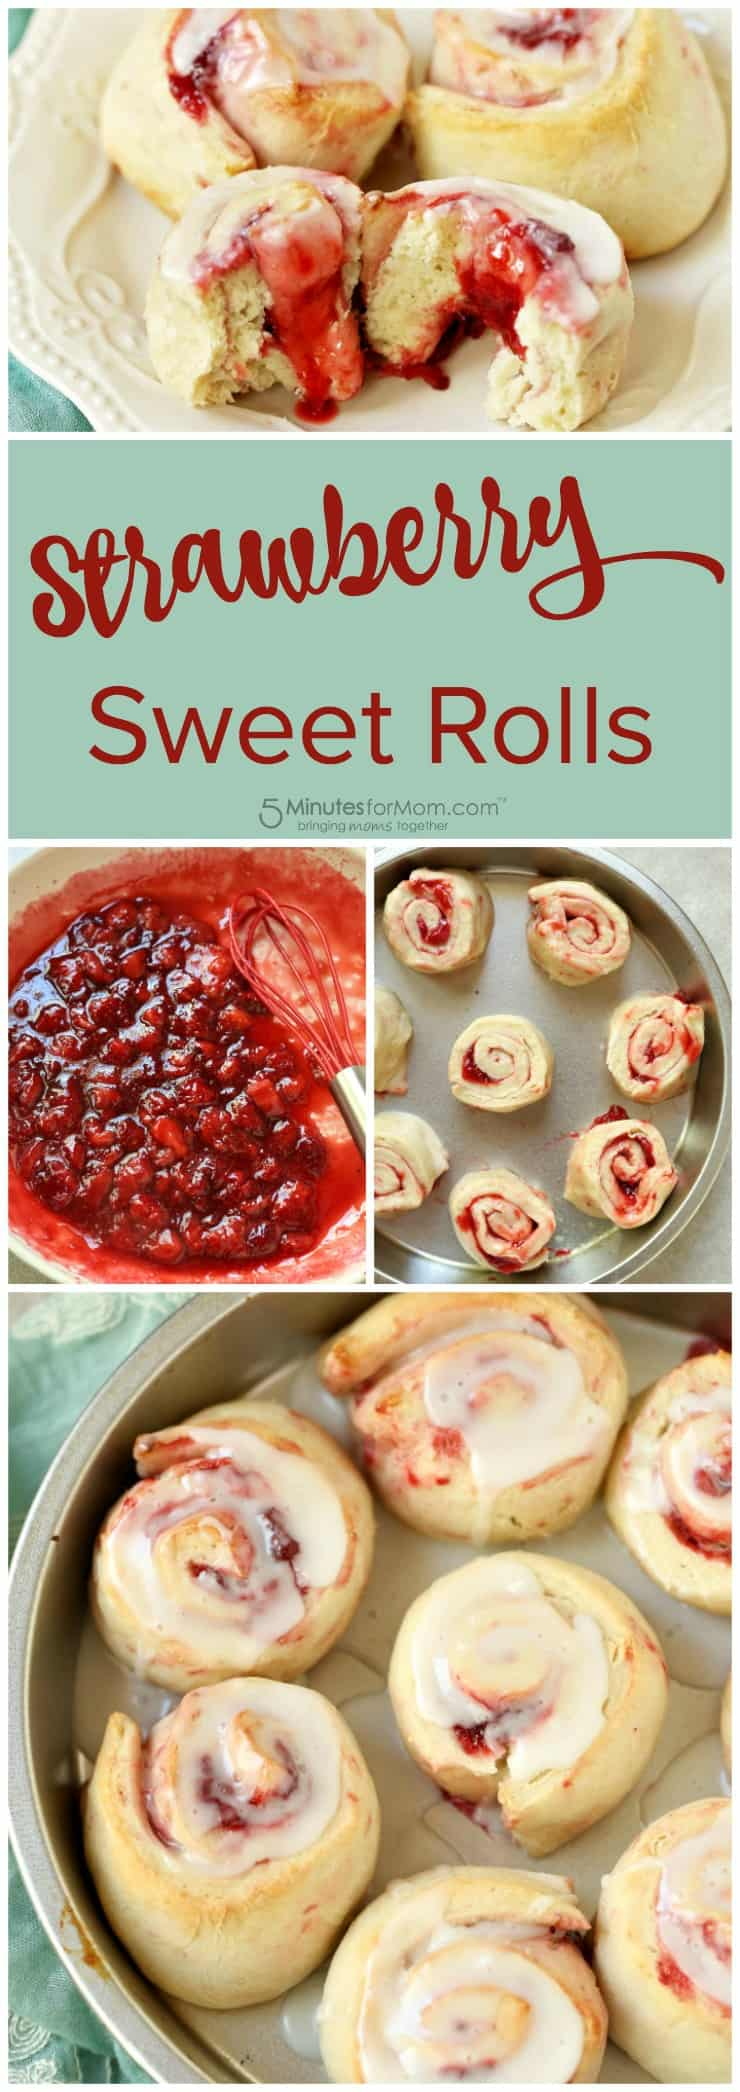 How to Make Strawberry Sweet Rolls